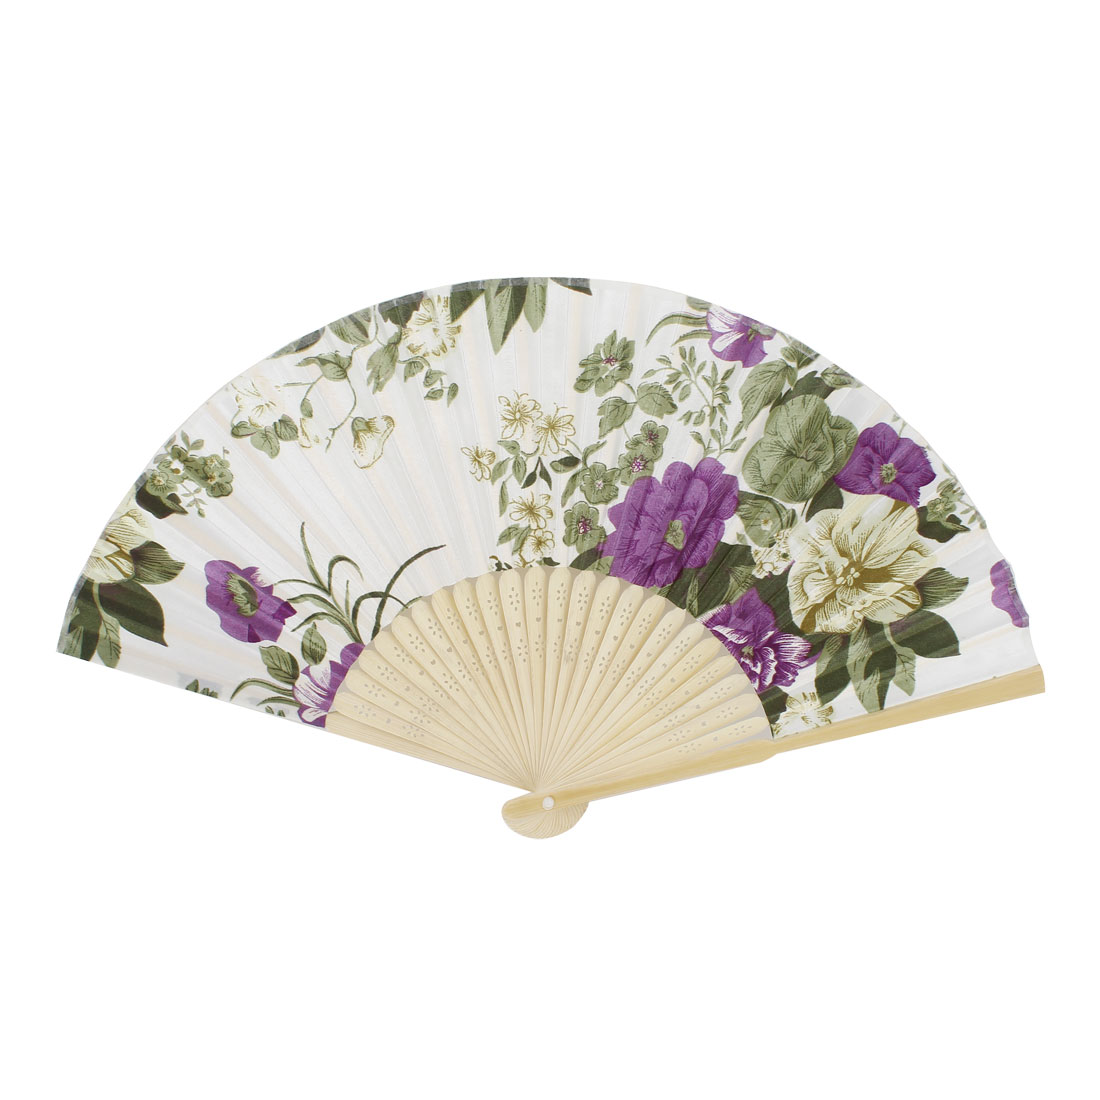 Green Flower Pattern Bamboo Hollow Out Ribs Folding Hand Fan White